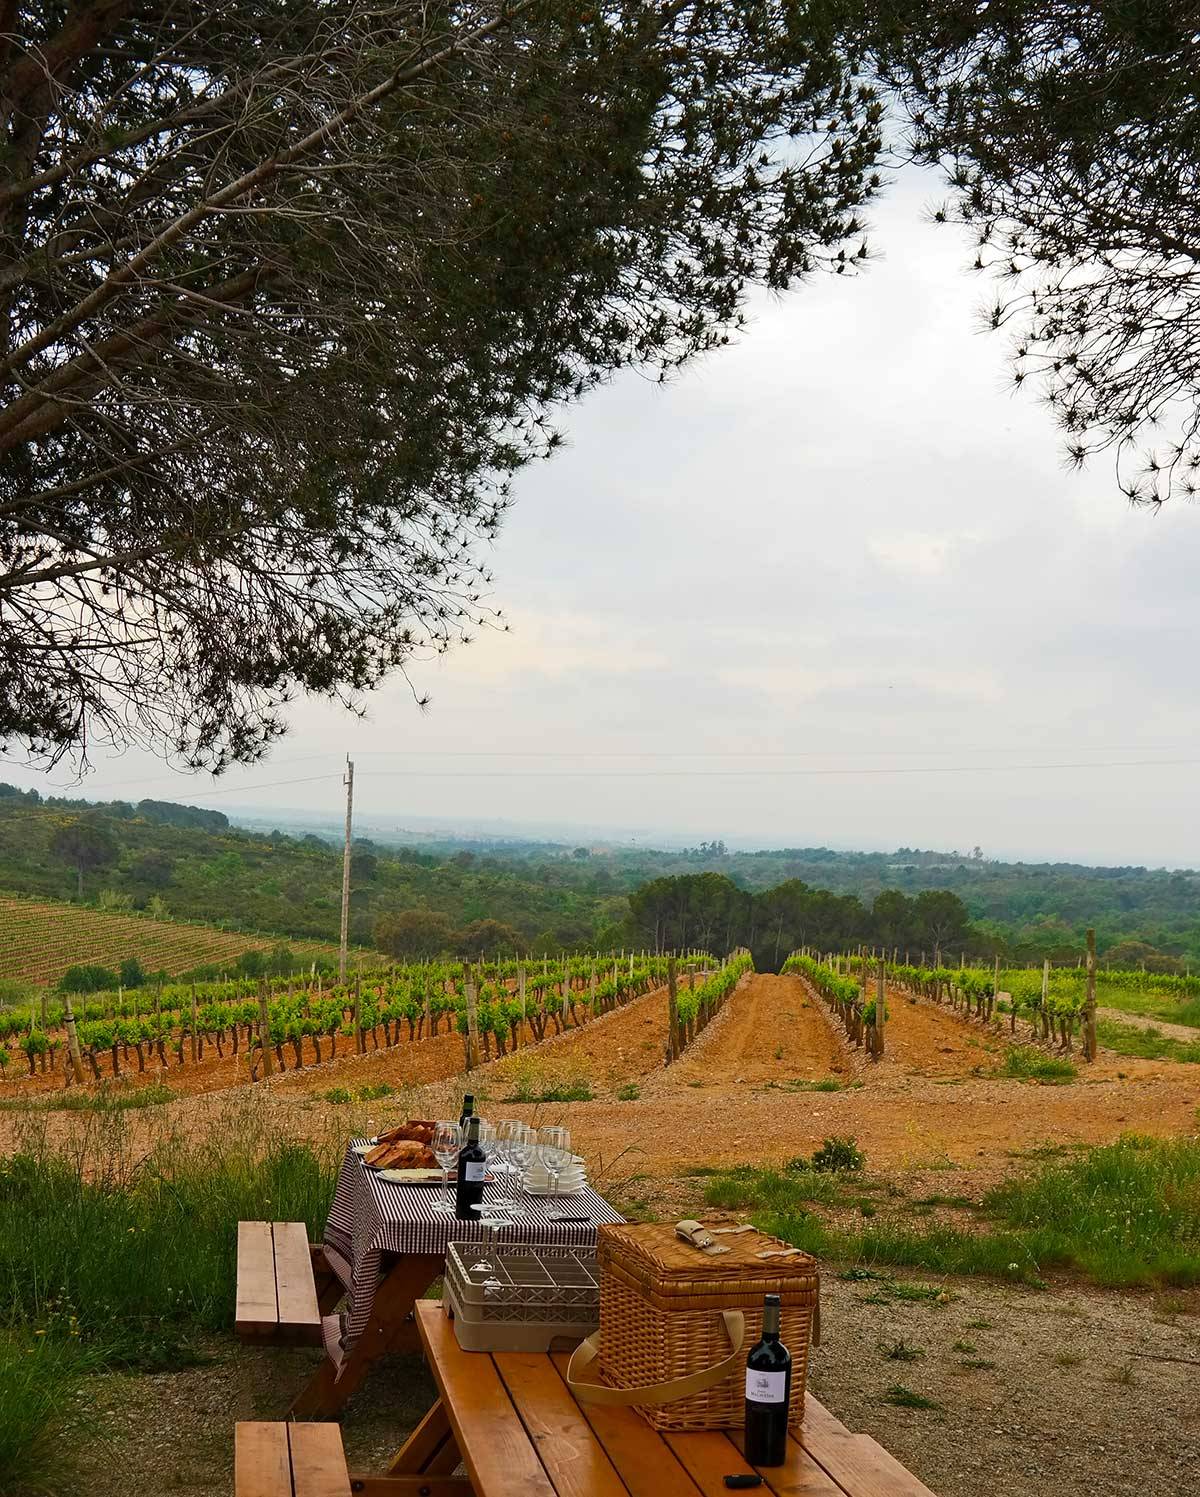 catalonia-spain-wine-vineyards-picnic